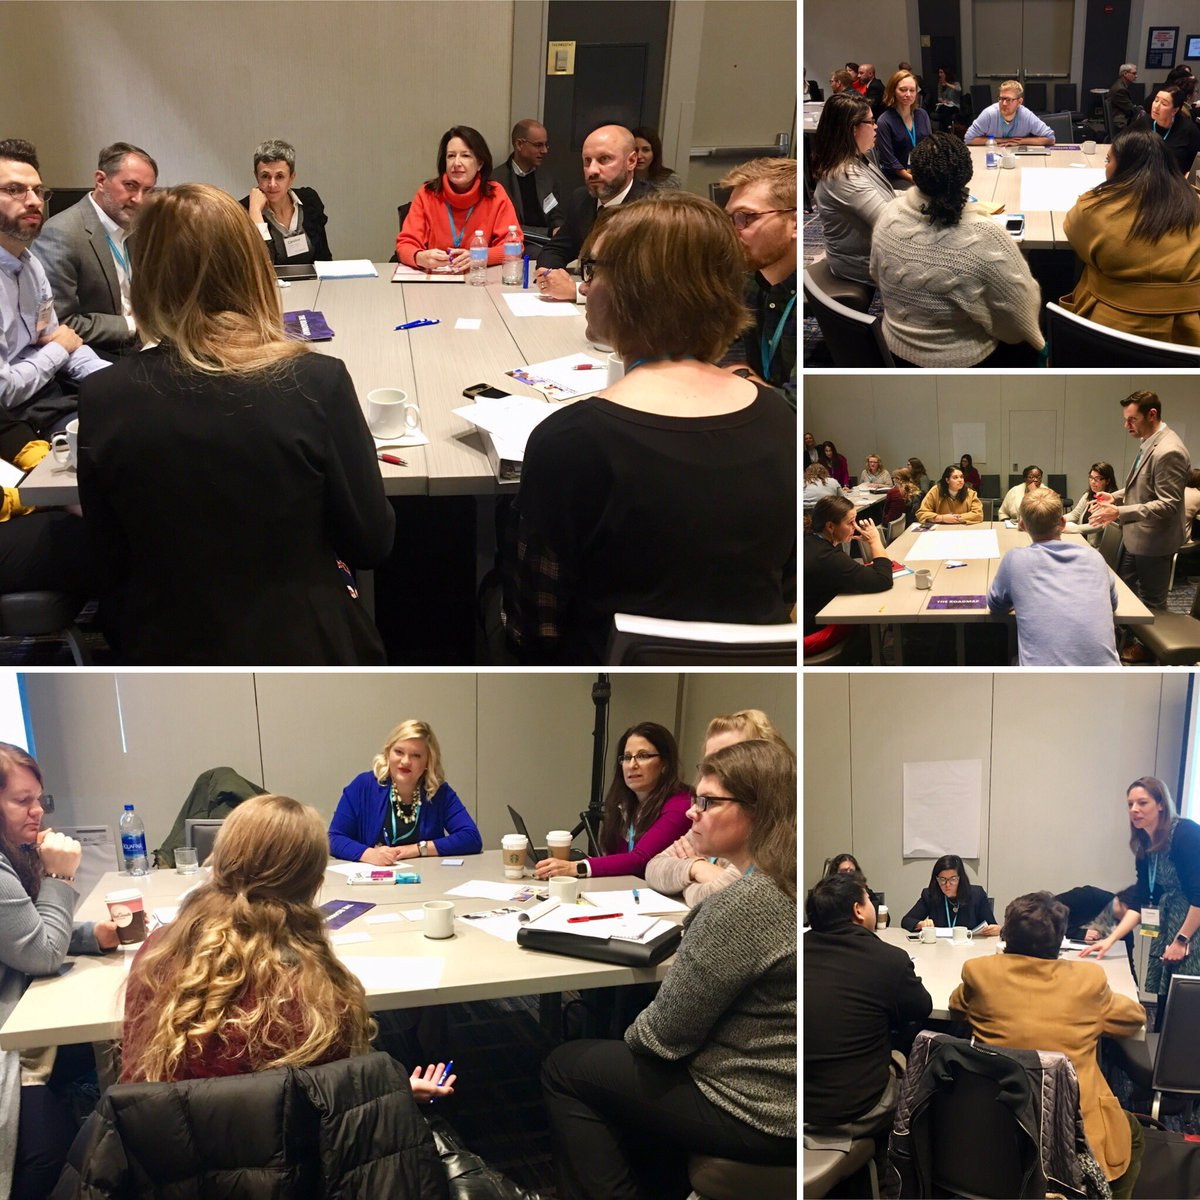 Getting down to business on #SDoH &amp; #ComplexCare: Teams from across the country setting tangible goals &amp; outlining actionable steps for change. #CenteringCare18 <br>http://pic.twitter.com/mvVlhBbm5K